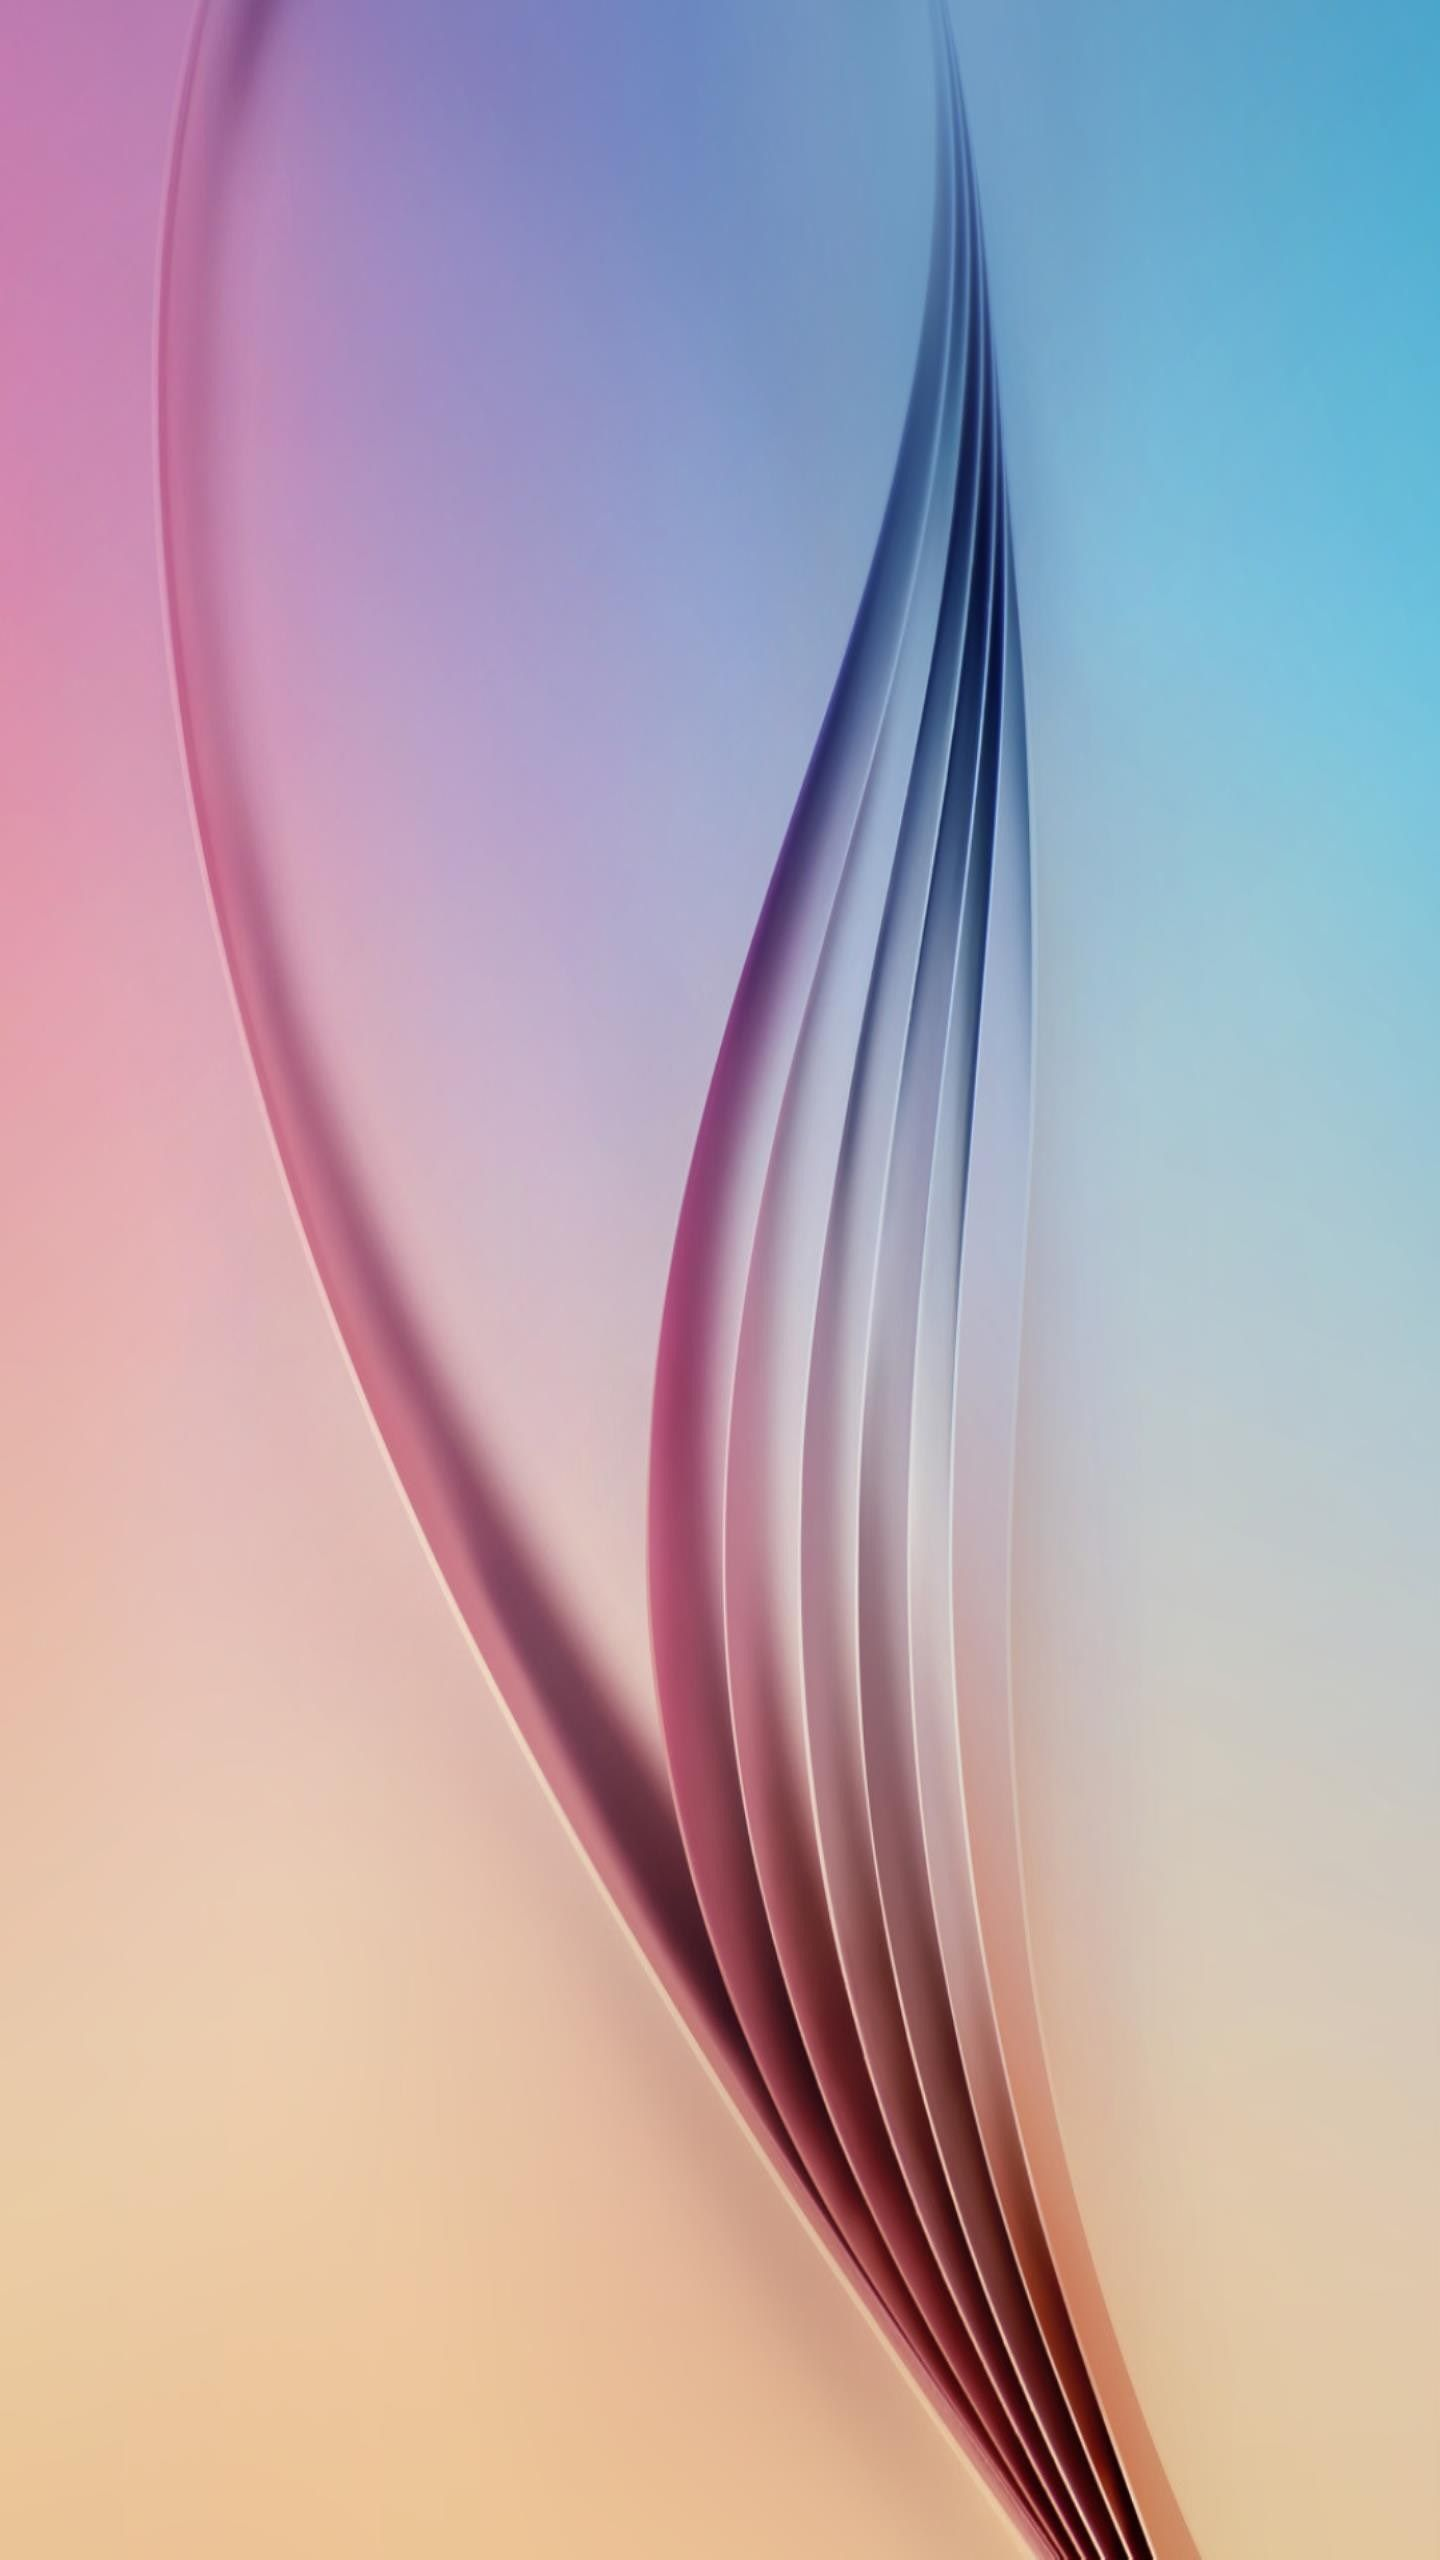 Samsung Tab S6 Wallpapers Top Free Samsung Tab S6 Backgrounds Wallpaperaccess